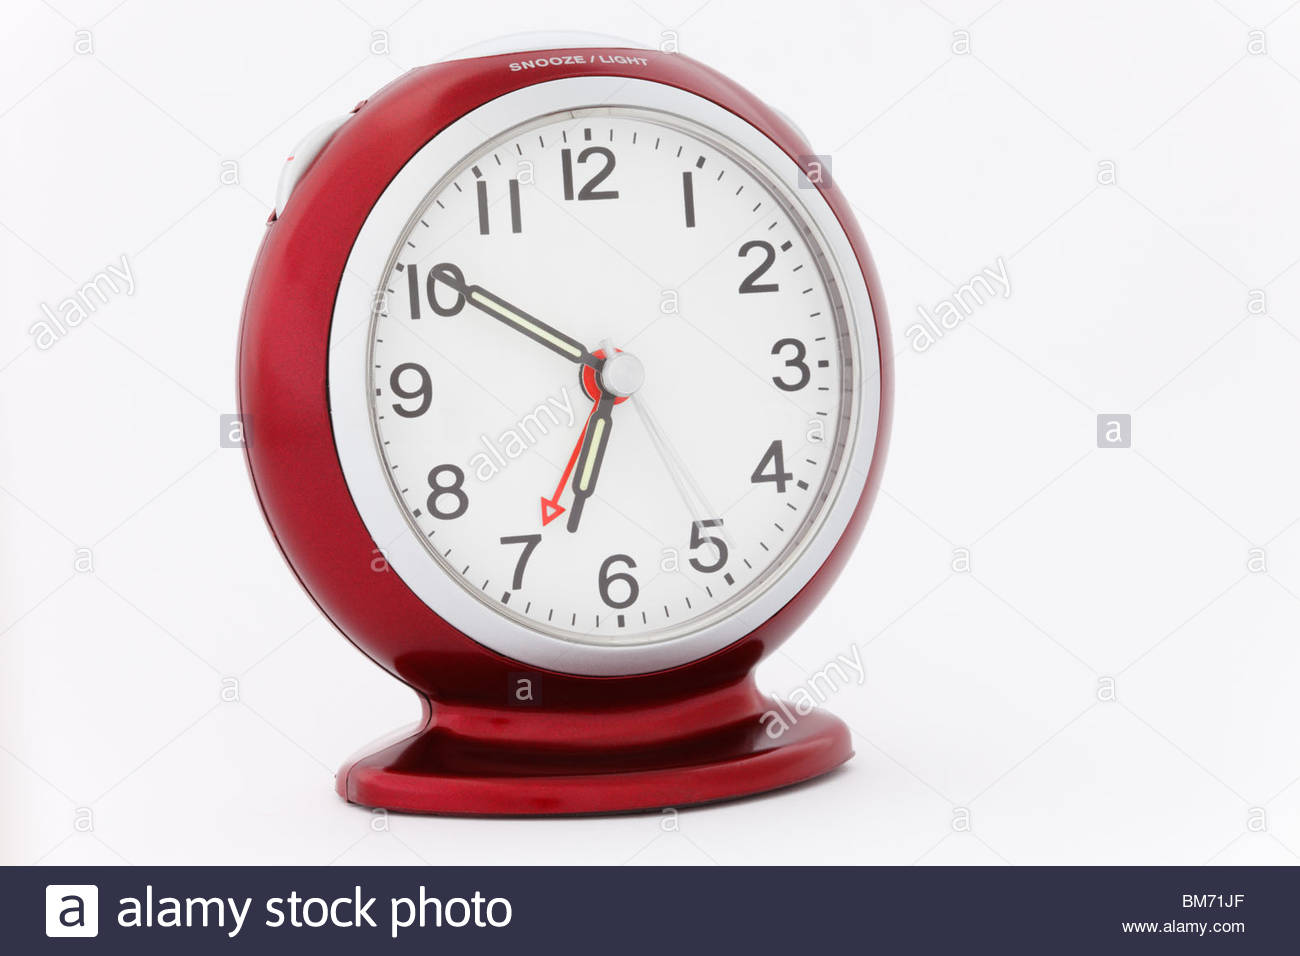 red alarm clock with luminous hands at ten minutes to seven just